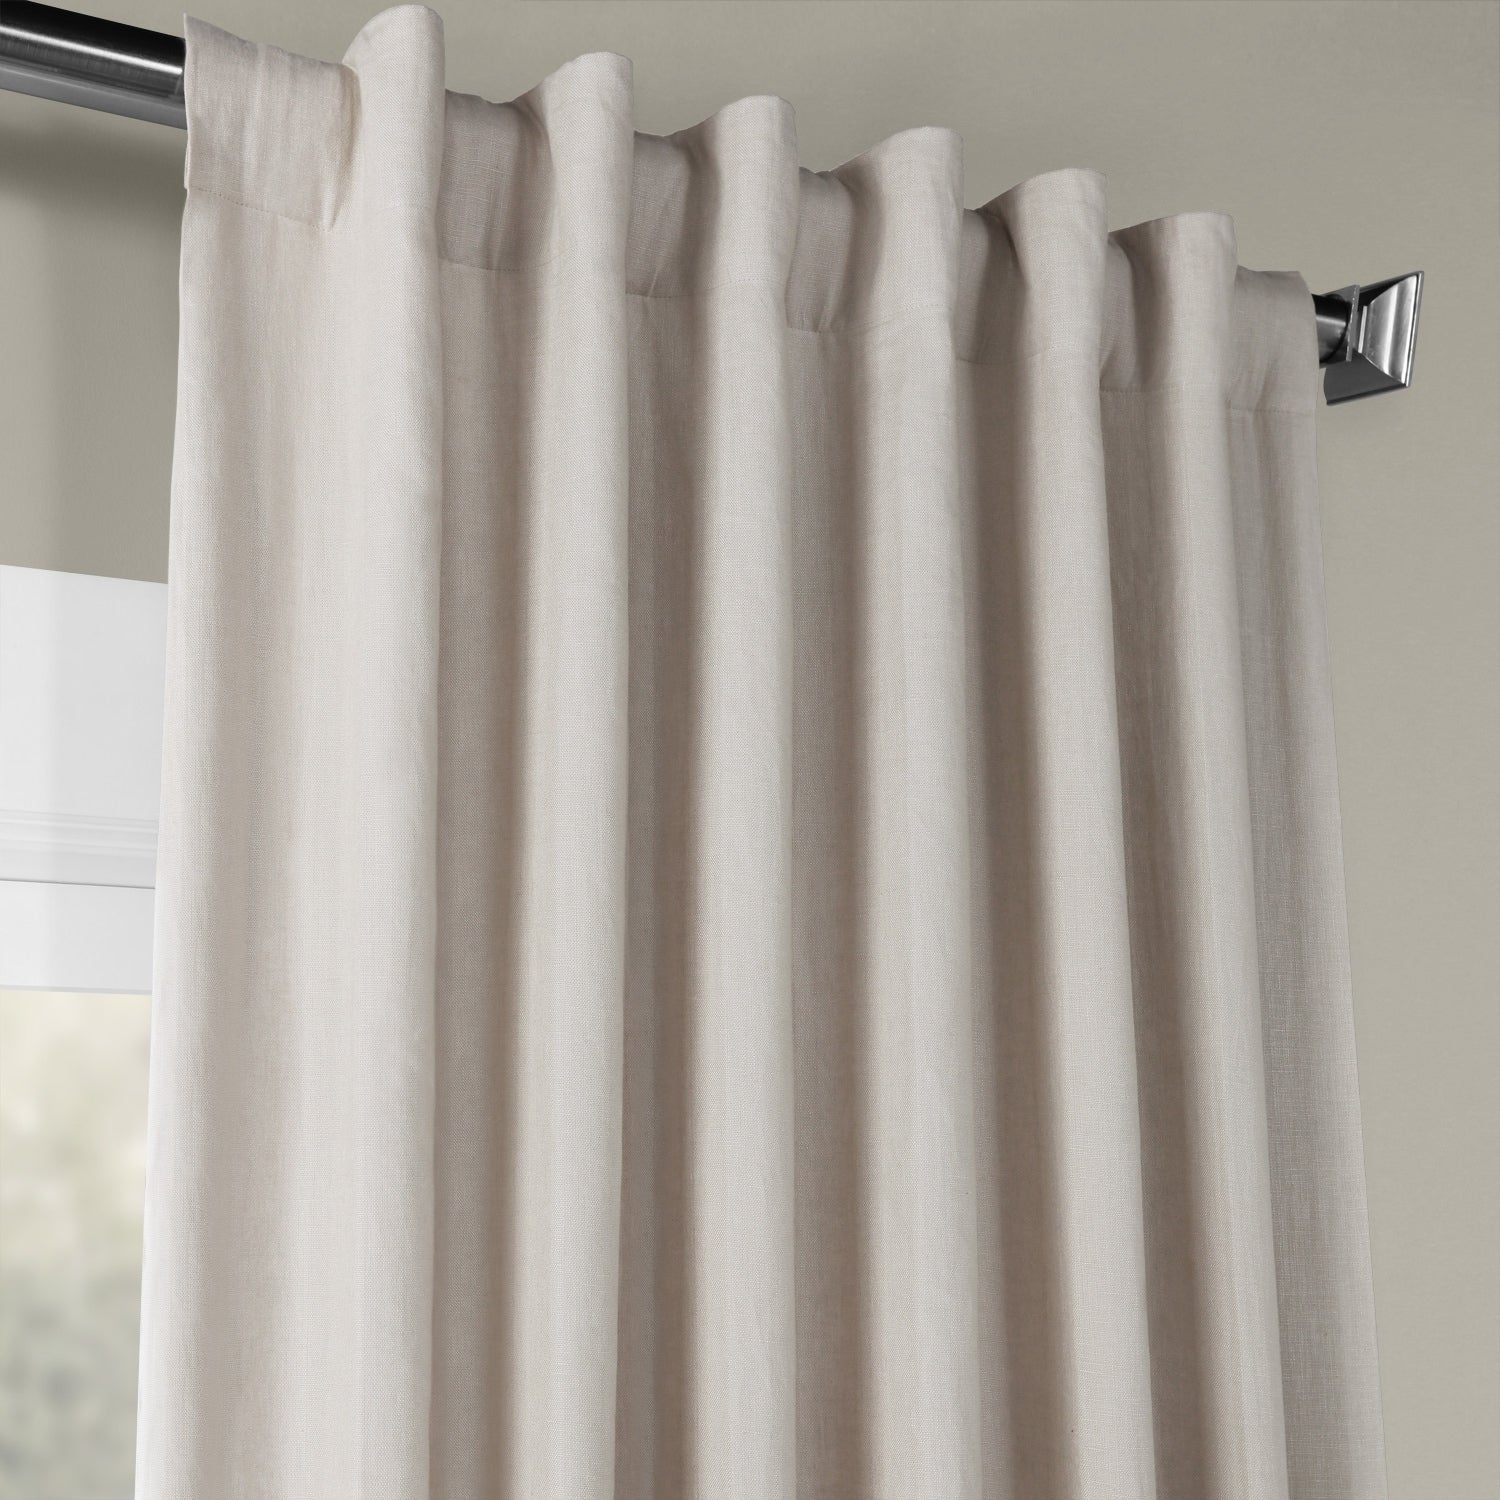 Shop Exclusive Fabrics French Linen Lined Curtain Panel With Regard To French Linen Lined Curtain Panels (View 20 of 20)